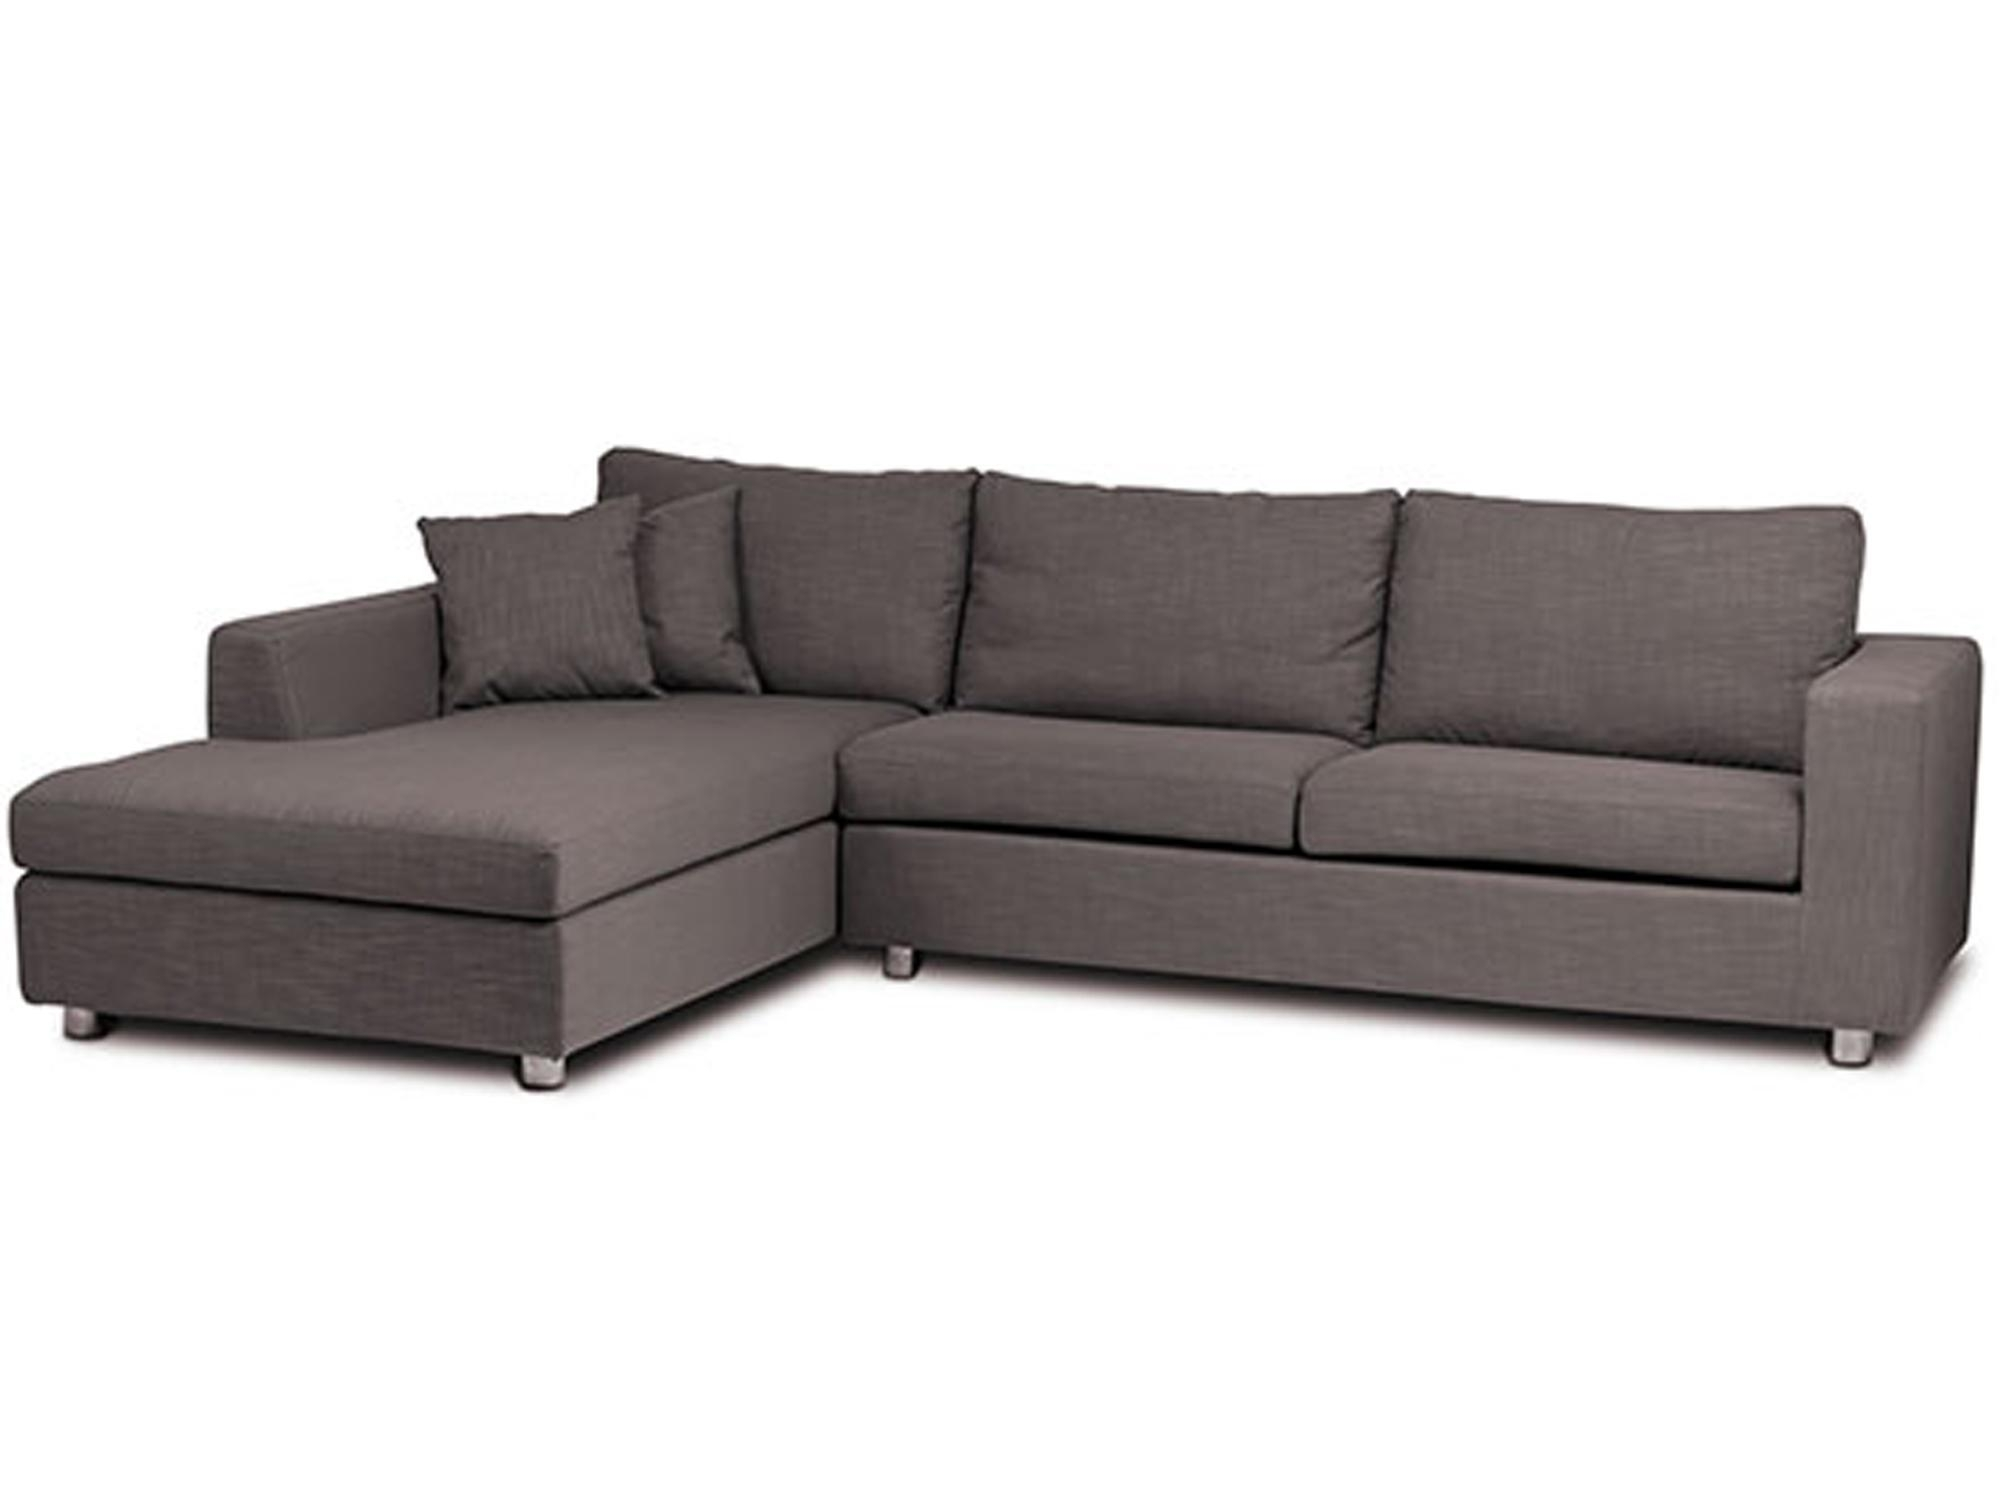 Sofas Center : Formidable Corner Sofa Picture Ideas Beds Uk Cheap Inside Cheap Corner Sofa Beds (Image 18 of 20)